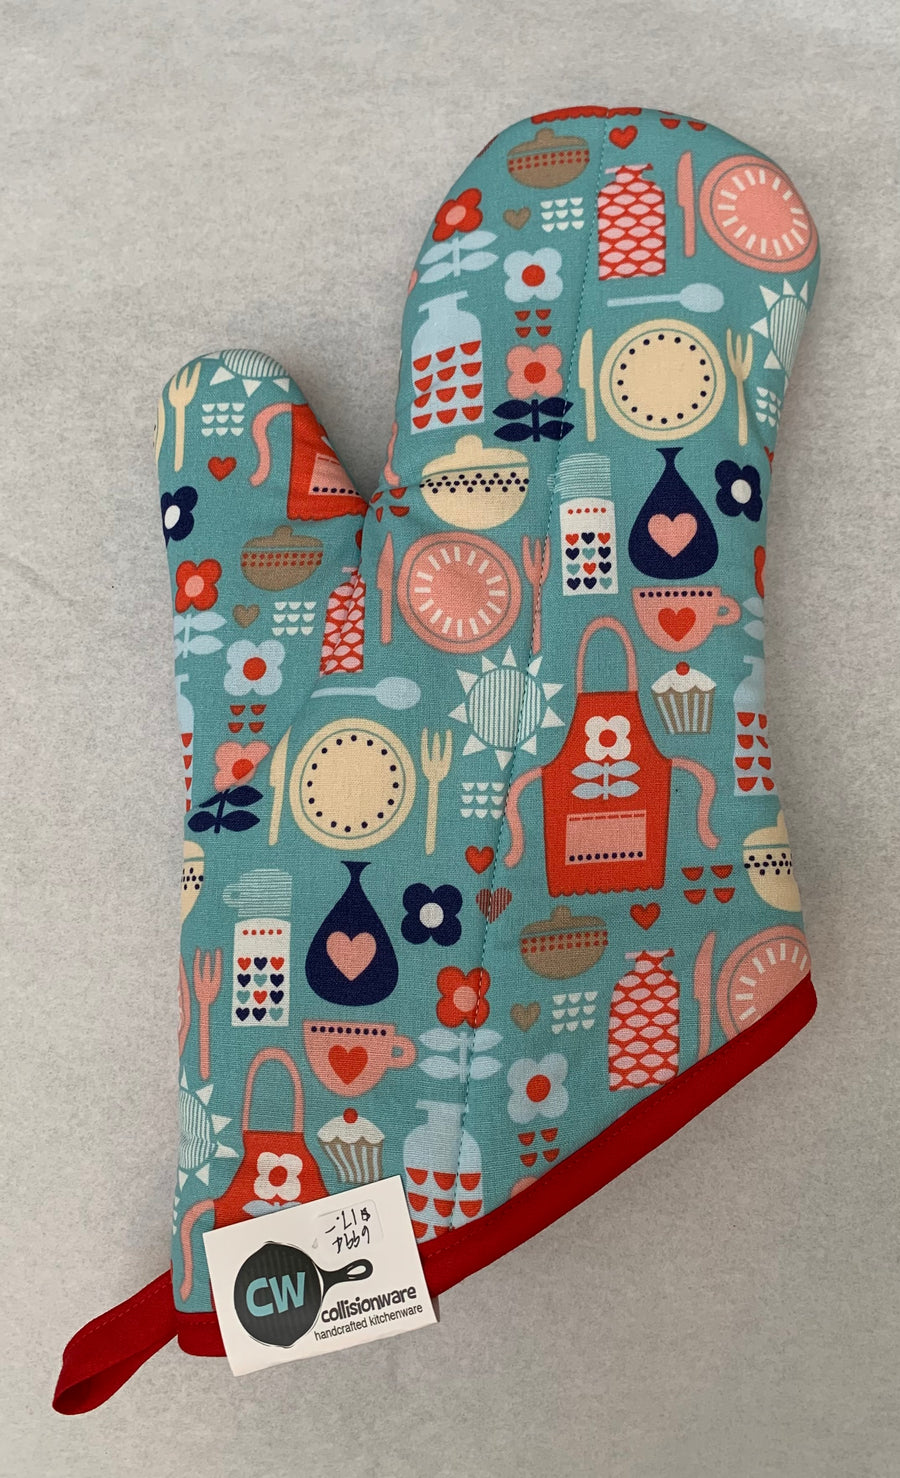 Oven Mitts by Collisionware